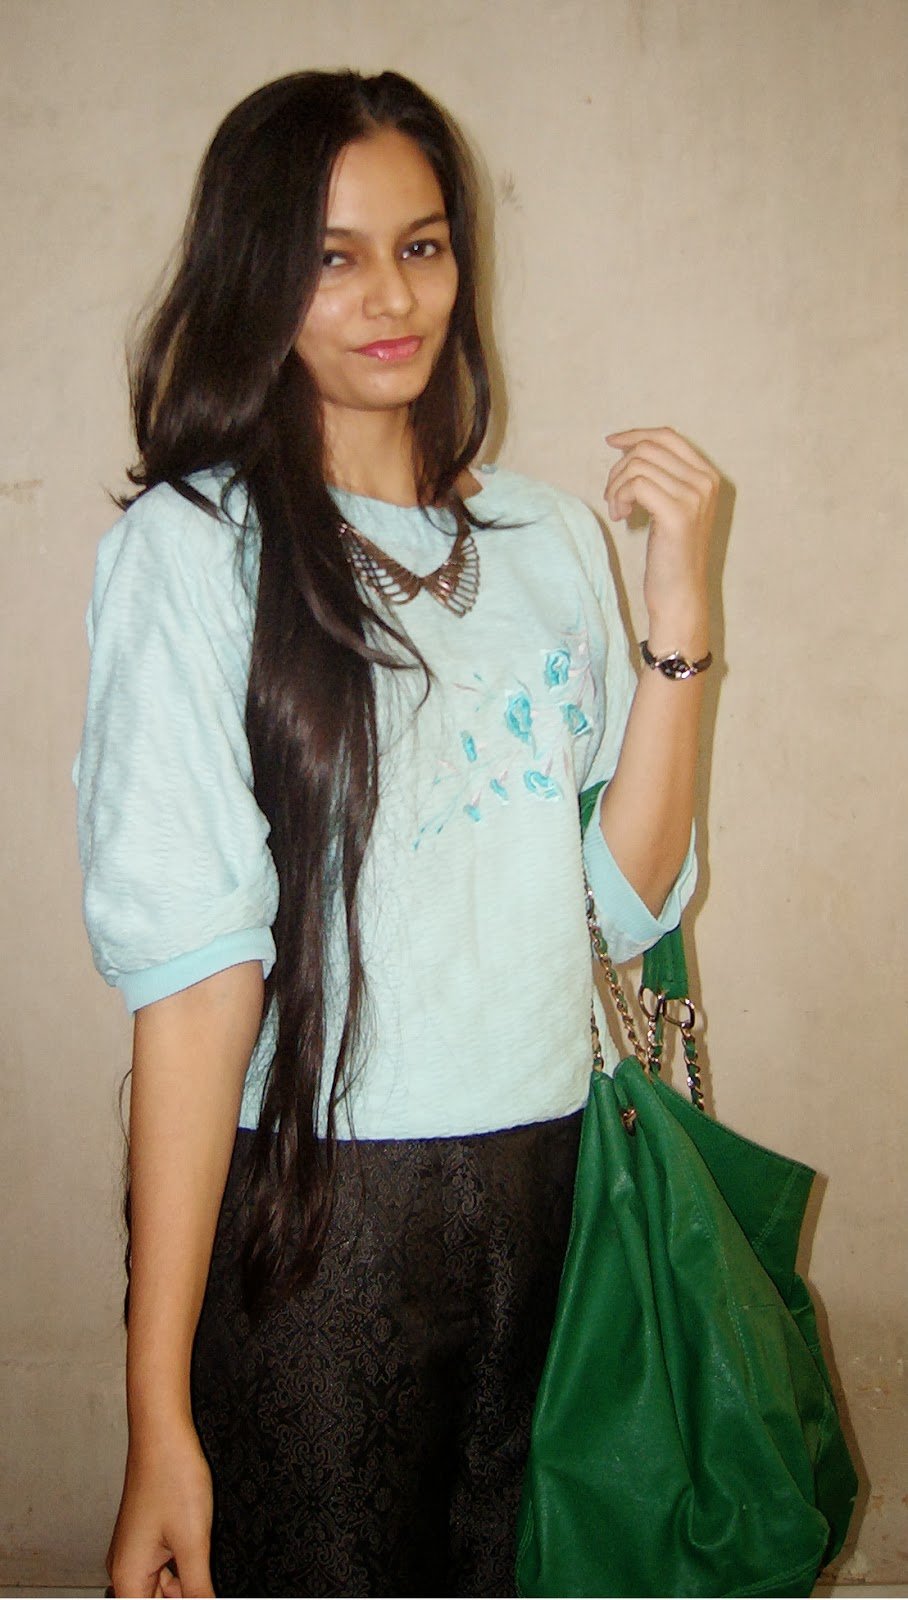 long hair, how to get healthy long hair, indian fashion blogger, mumbai fashion blogger, statement necklace